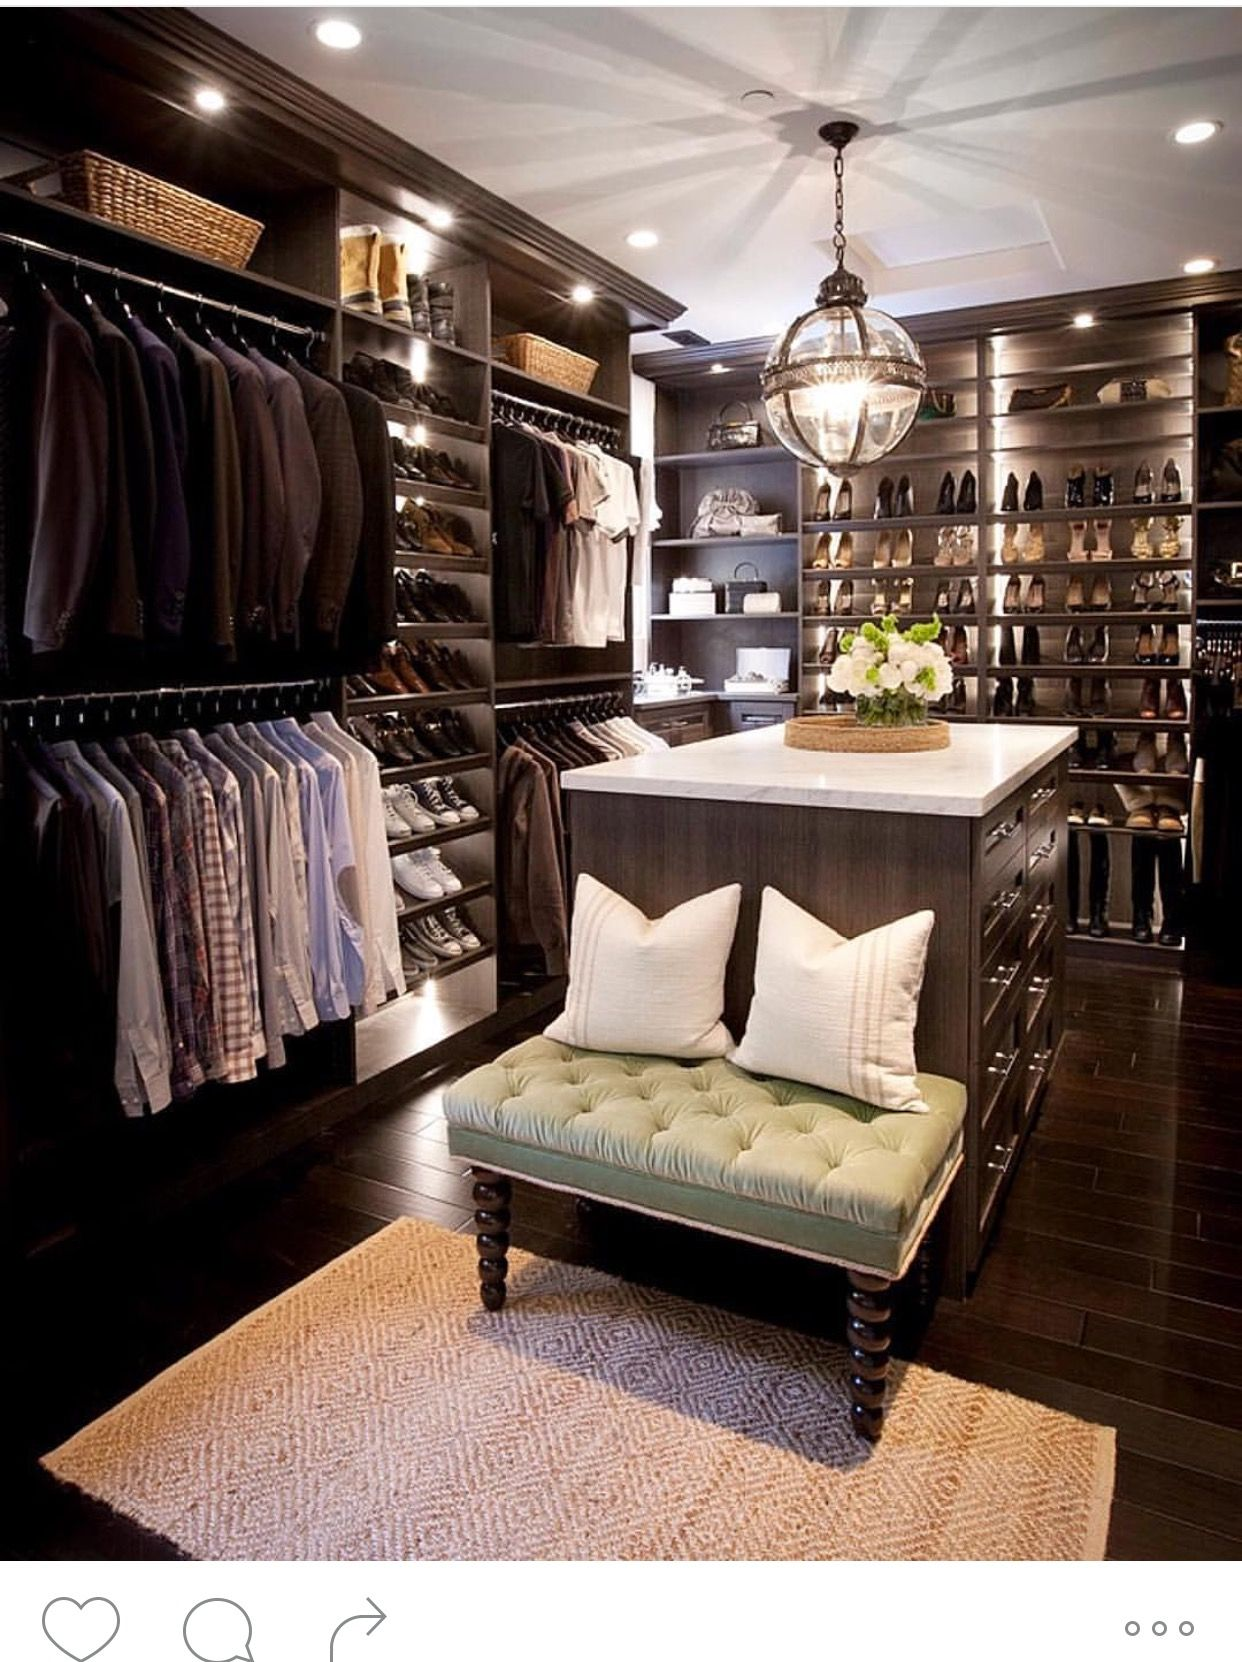 Pin By Derek Youngquist On House Ideas Walk In Closet